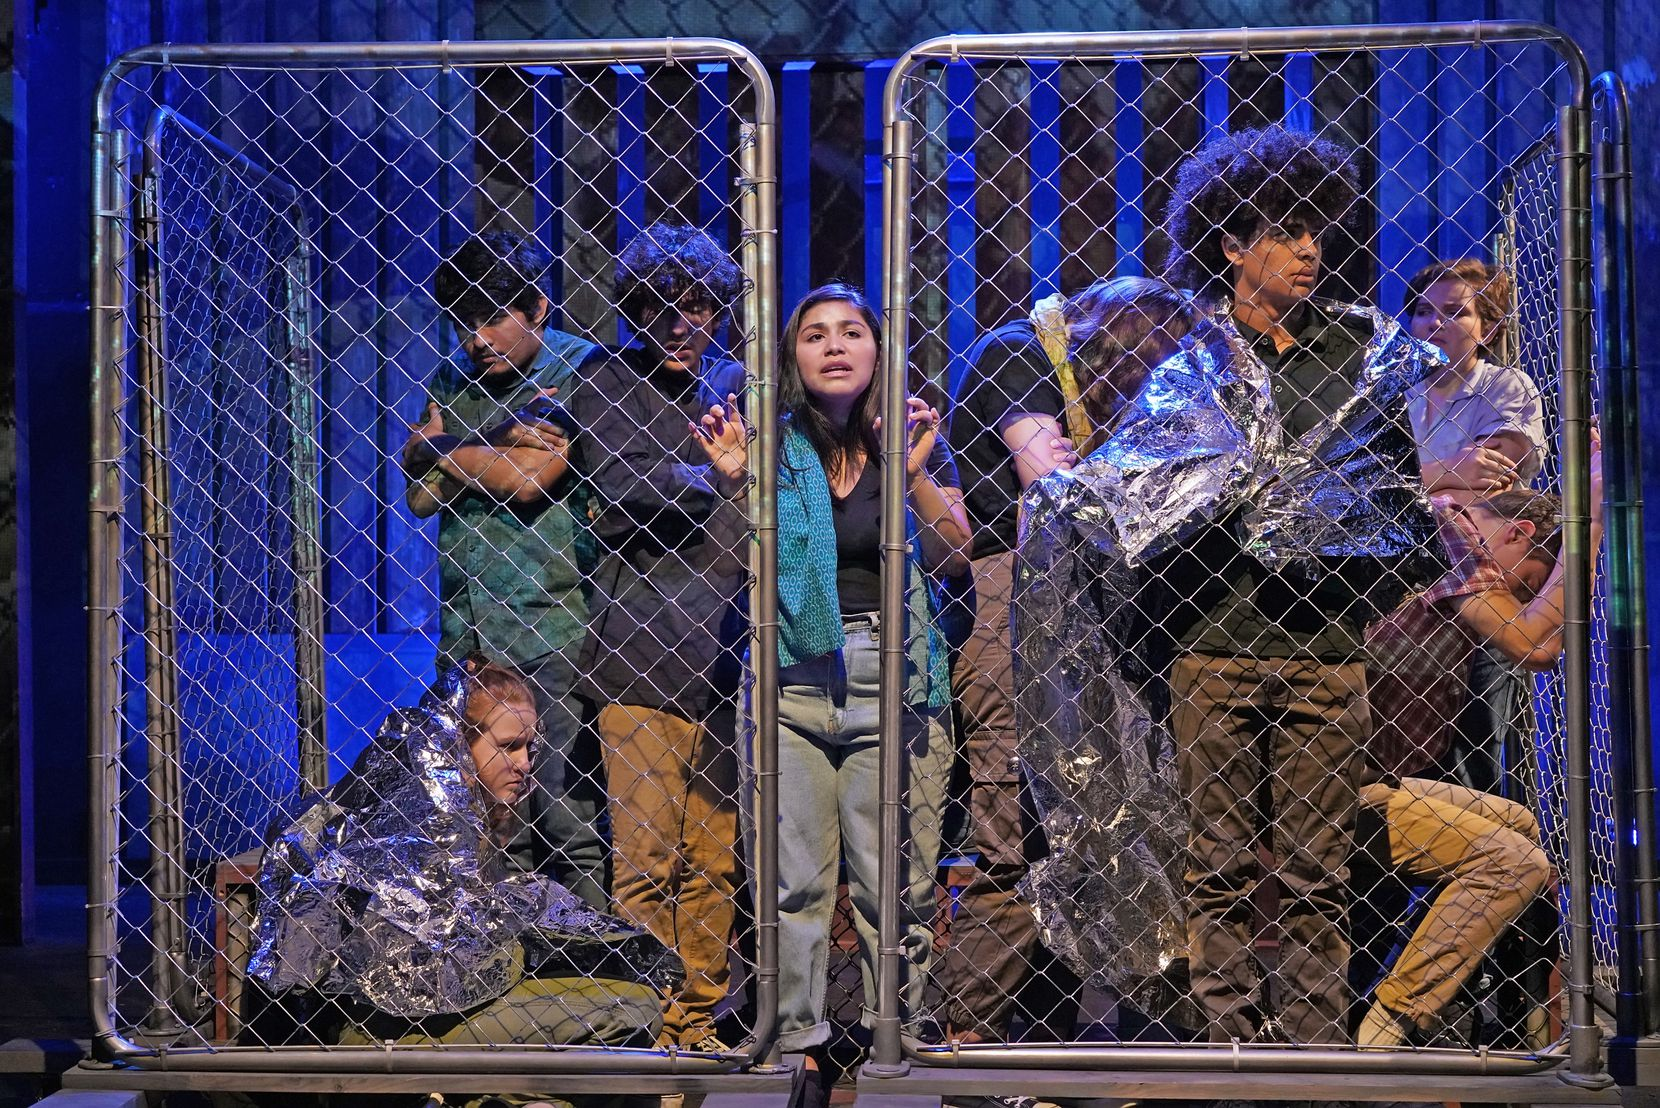 Teen actors from Cry Havoc Theater Company depict immigrants being held at the border in Crossing the Line, their documentary play created out of a trip to South Texas and Mexico, where they observed and interviewed people on all sides of the controversy.